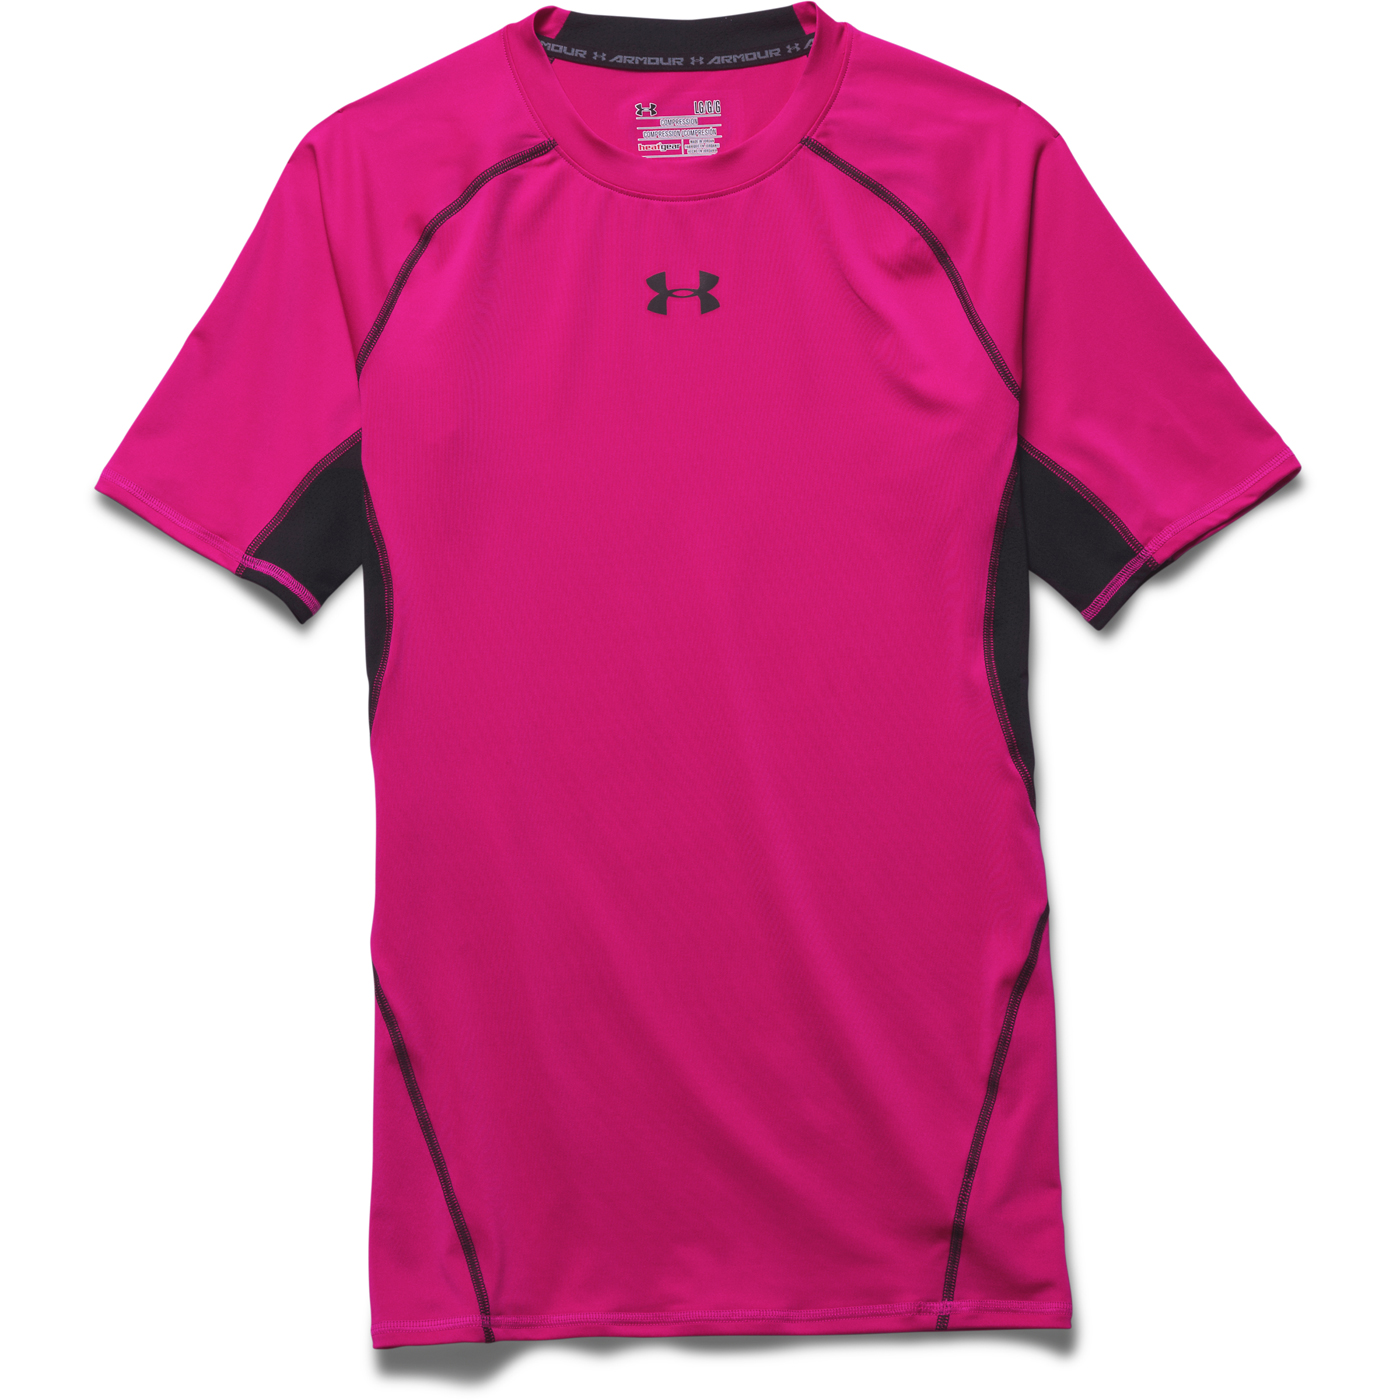 Under armour men 39 s heatgear compression t shirt for Under armour i will shirt